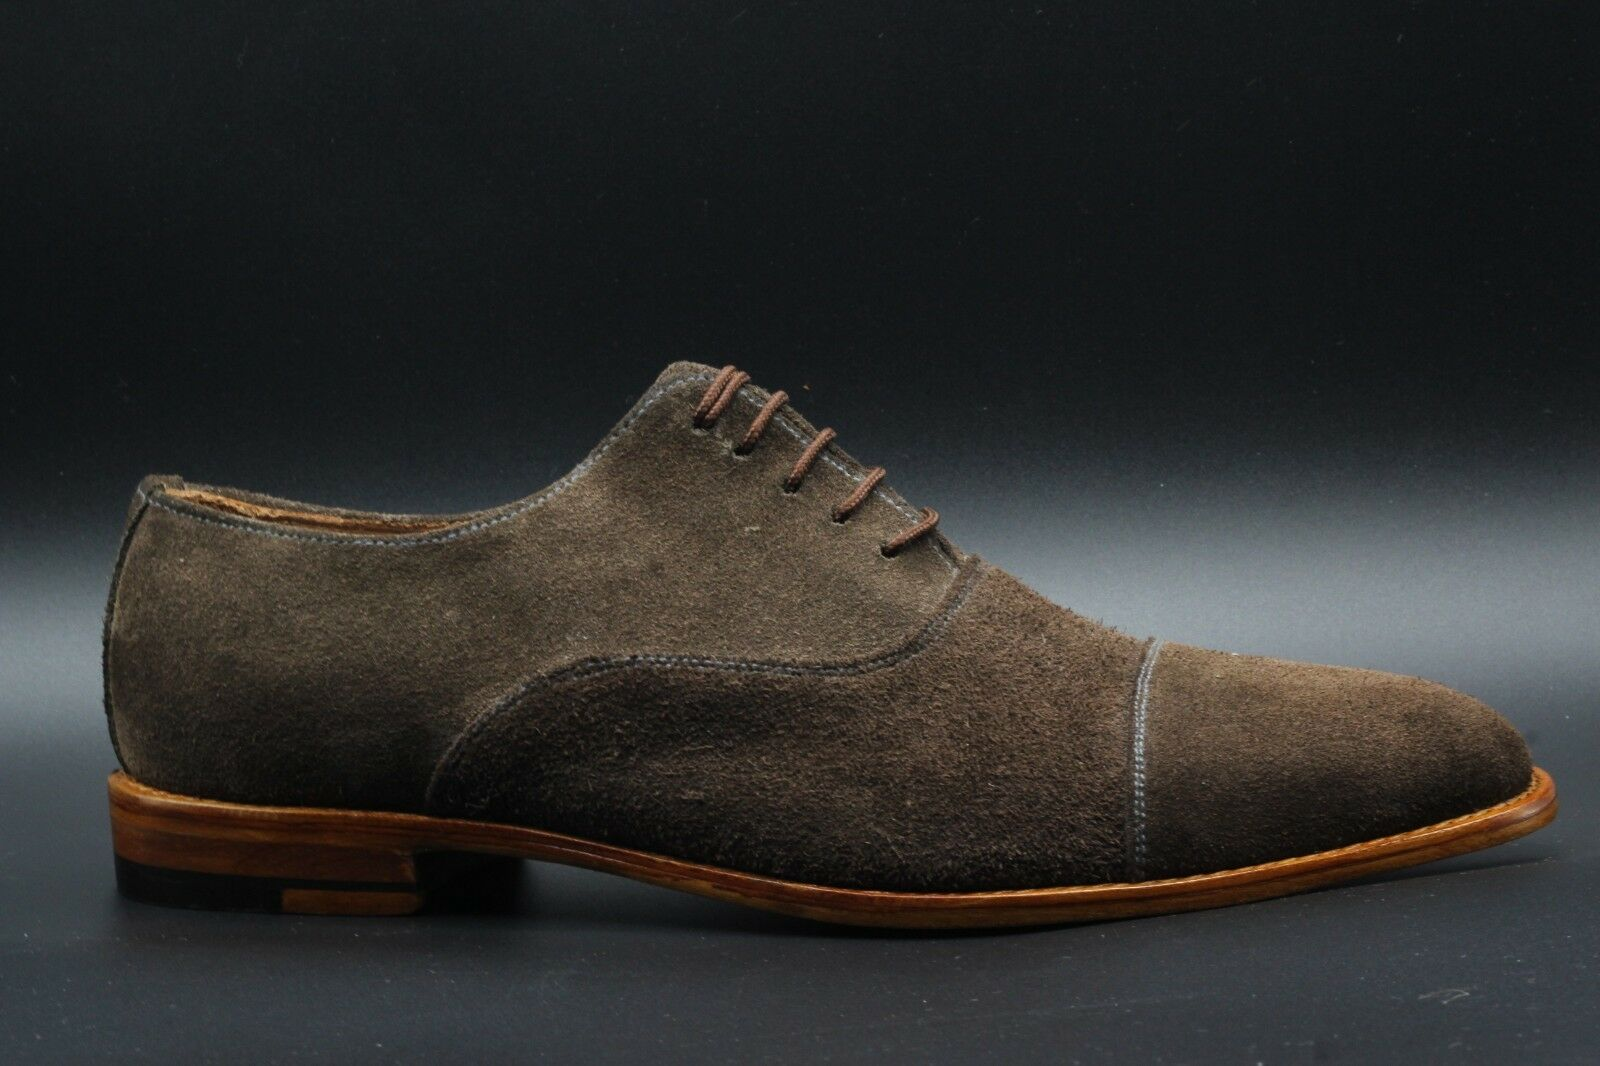 new style 01b61 4ffe8 Handmade Men s Genuine Brown Suede Lace Up Oxford Toe Cap Formal shoes